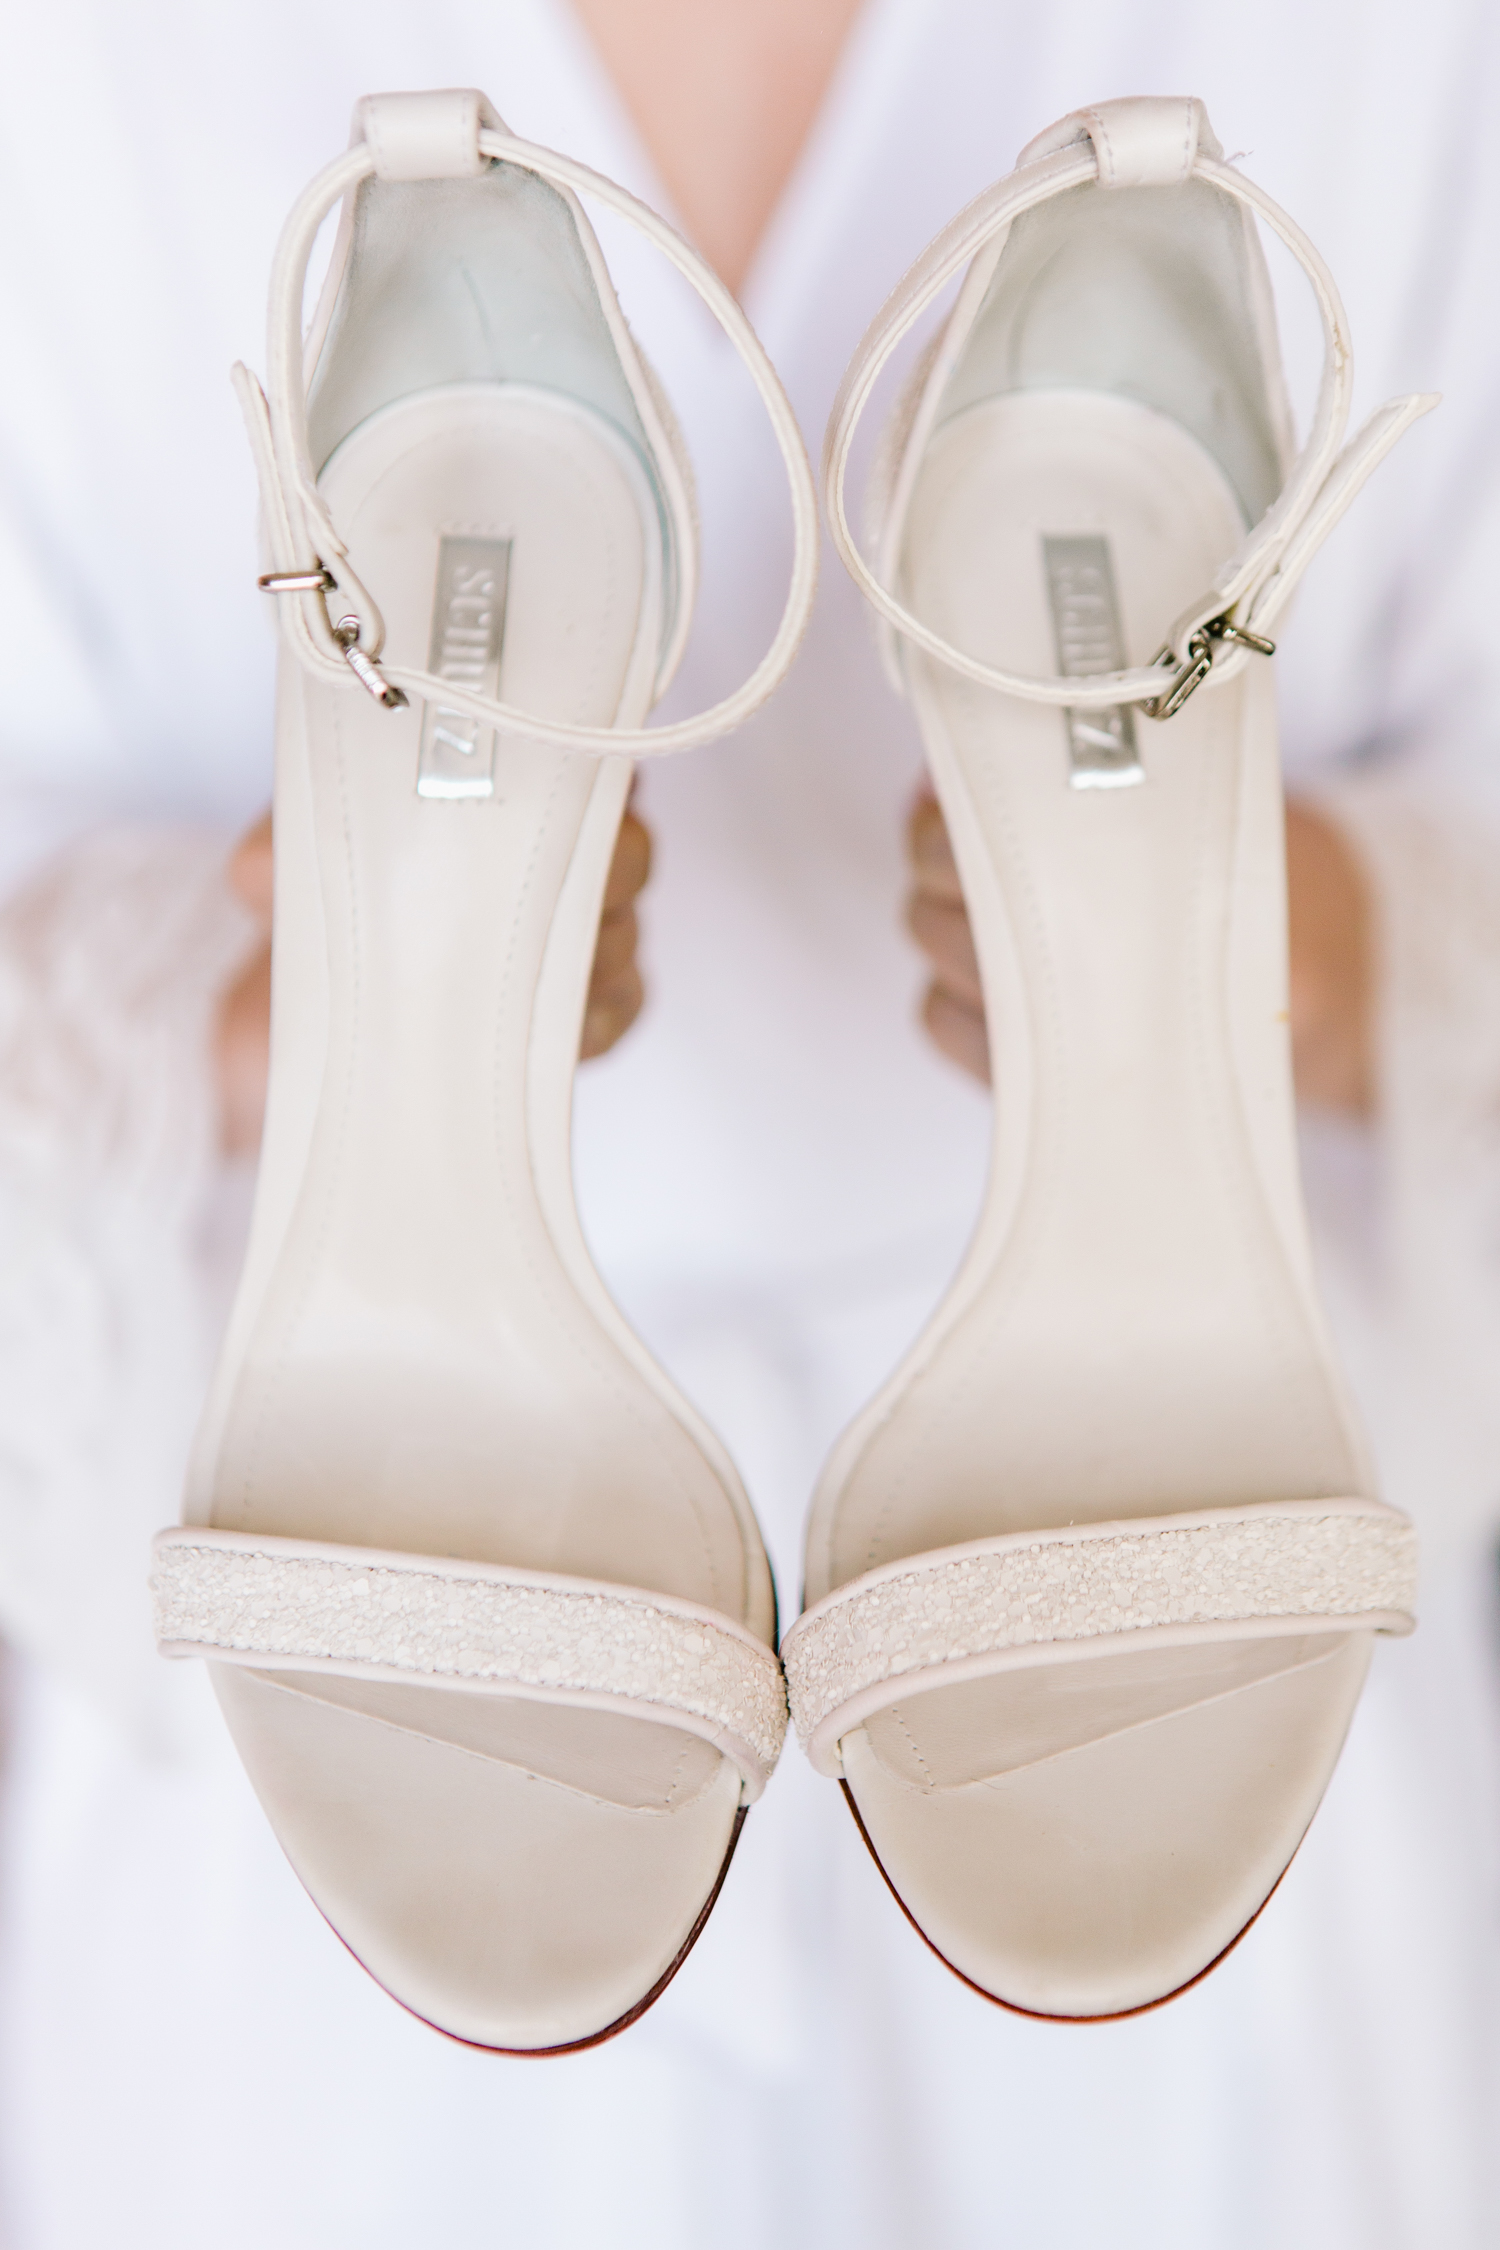 wedding sandals Simple white wedding shoe sandals with ankle strap open toe